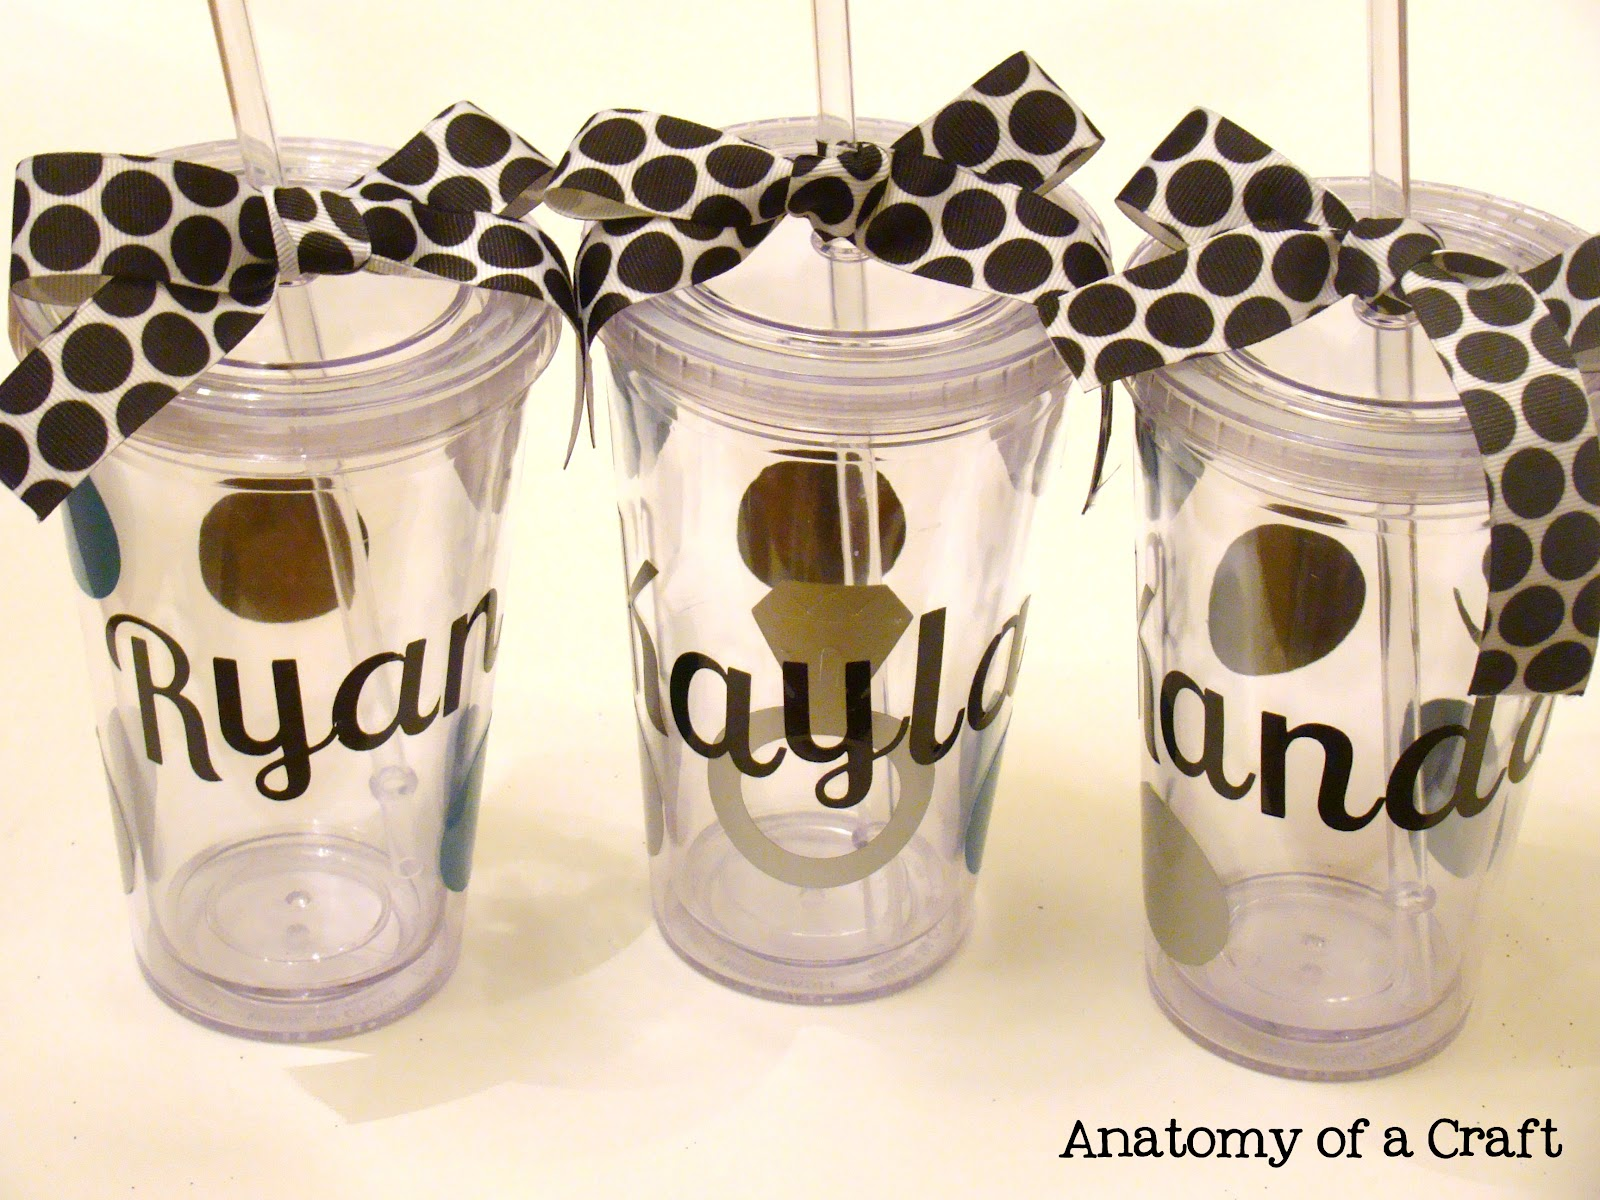 Decorating Plastic Tumblers Anatomy Of A Craft Tuesday Tutorial 6 Personalized Acrylic Tumblers